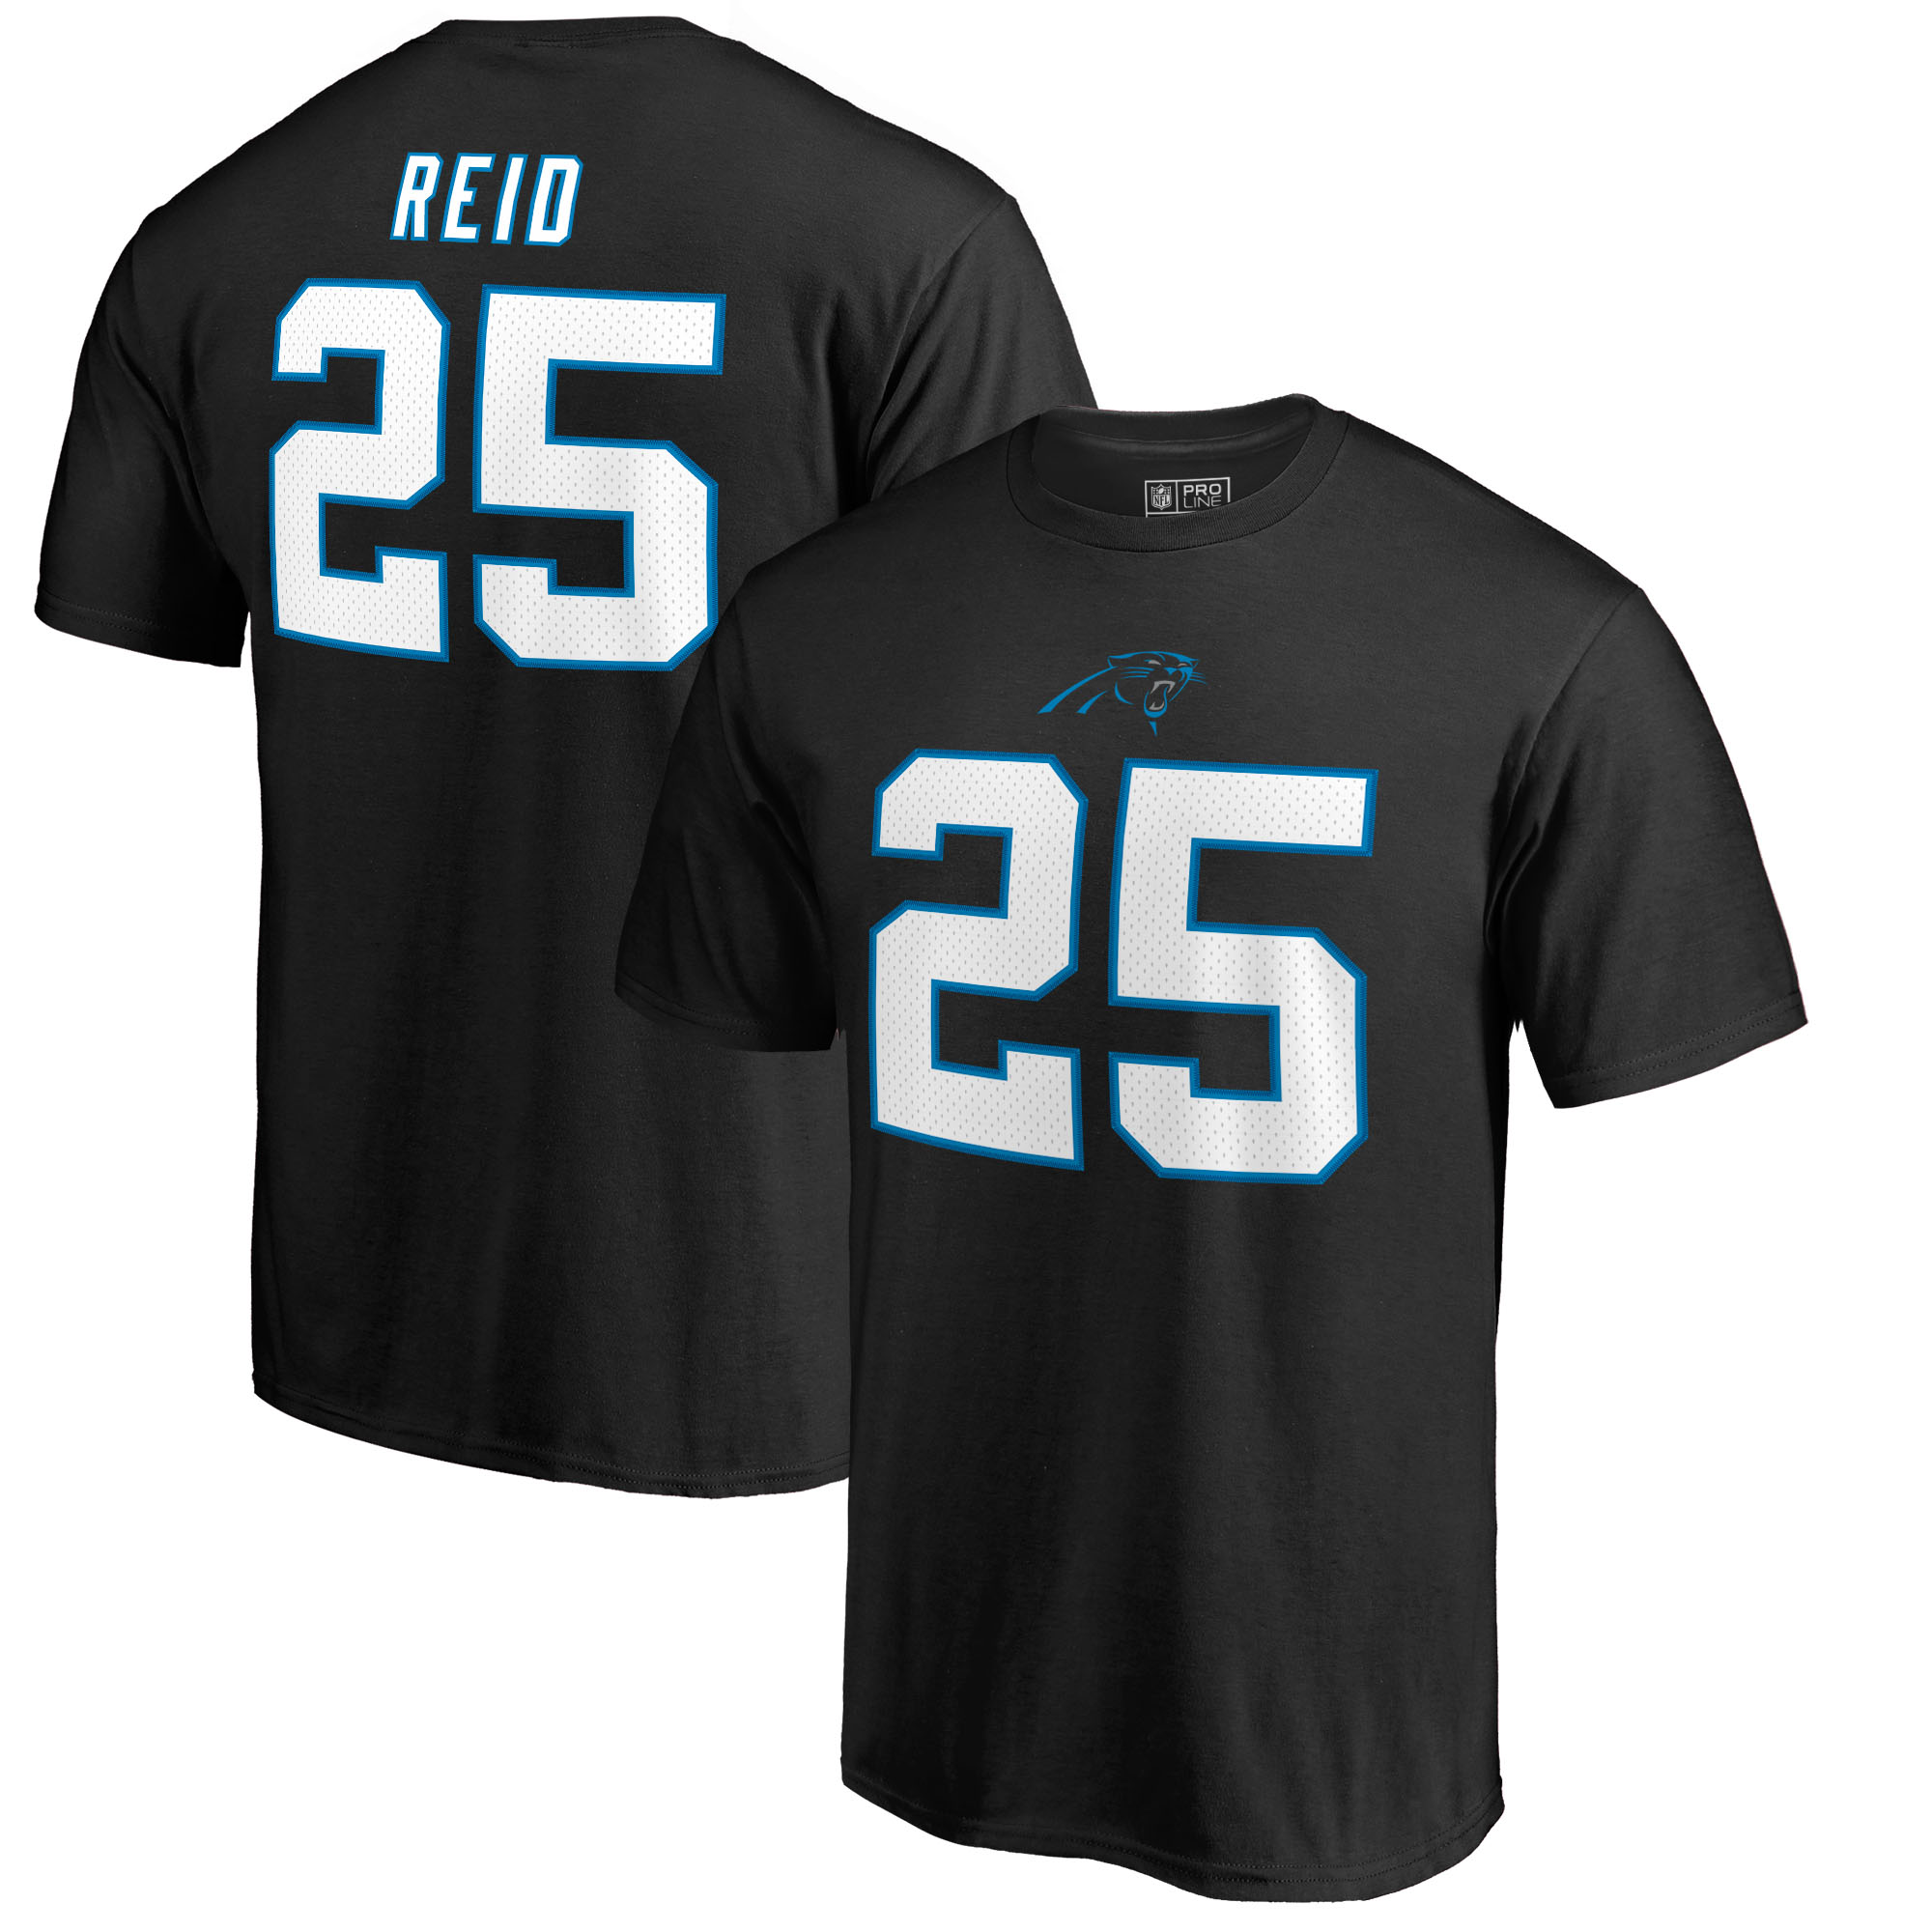 Eric Reid Carolina Panthers NFL Pro Line by Fanatics Branded Team Authentic Stack Name & Number T-Shirt - Black